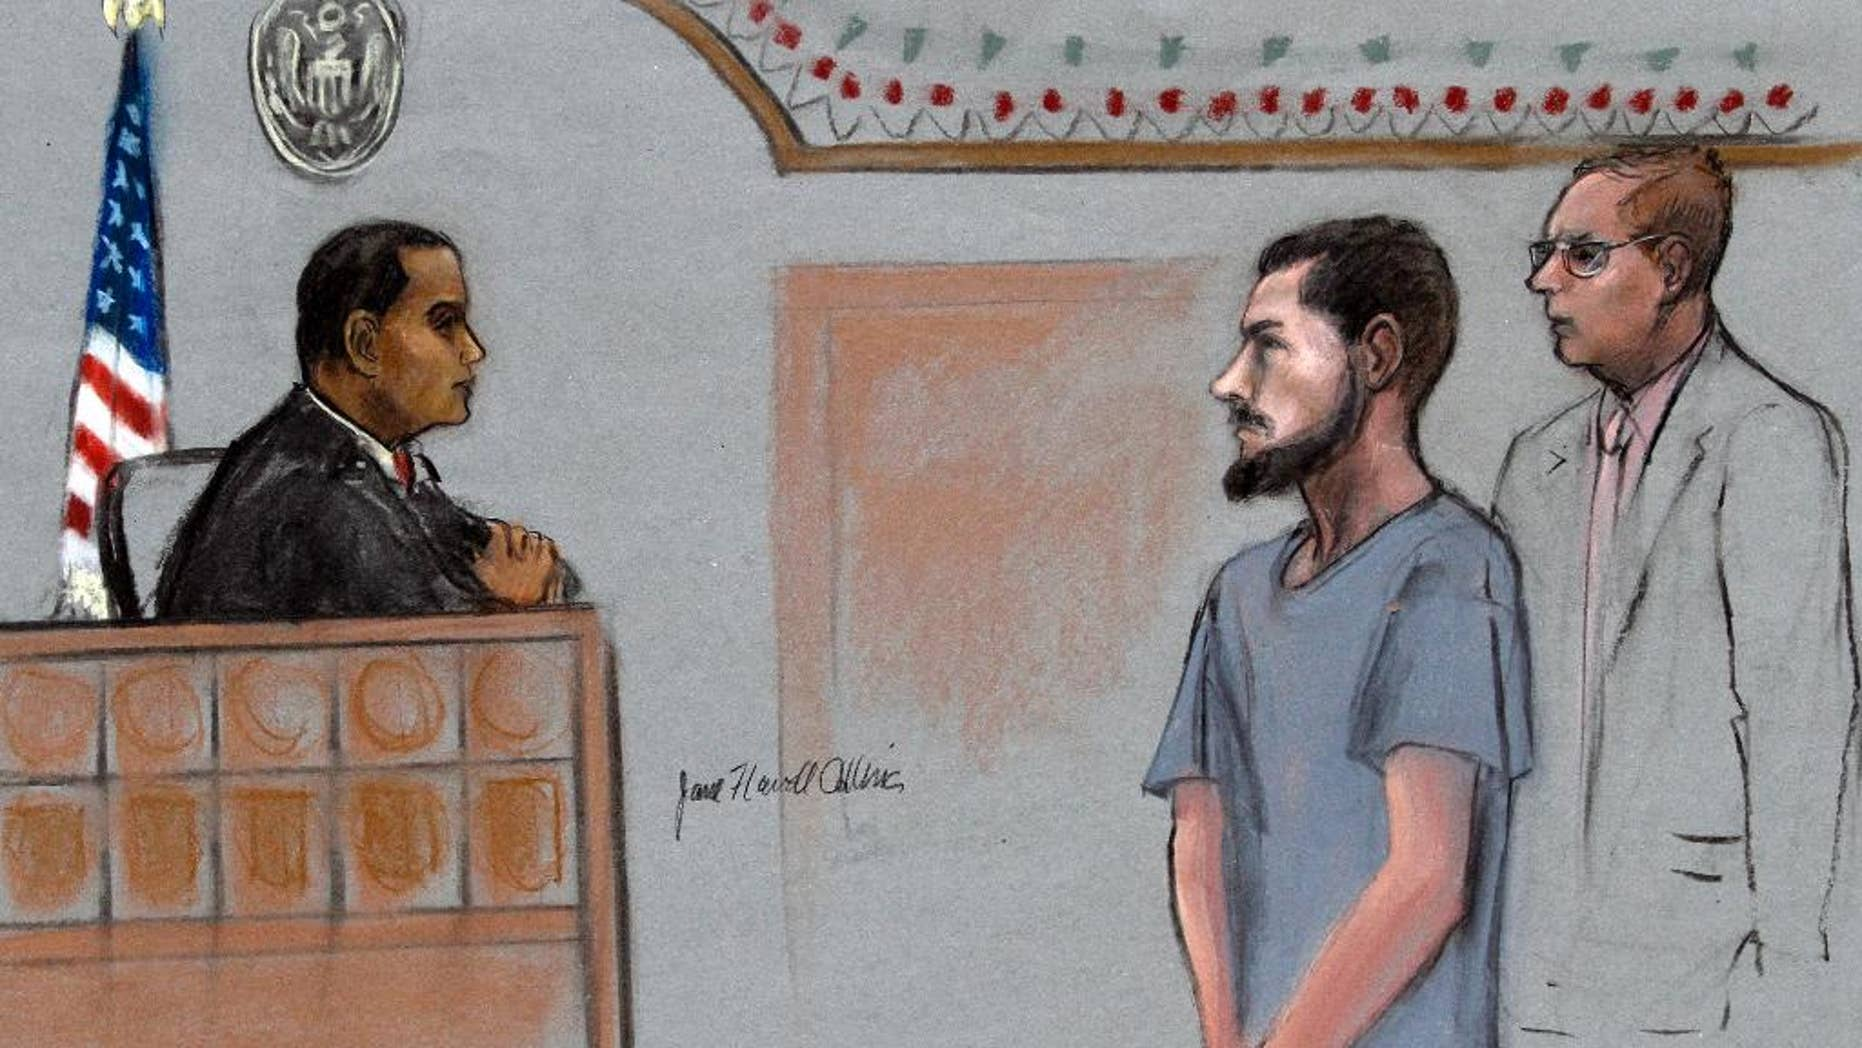 In this courtroom sketch, Nicholas Rovinski, second from right, of Warwick, R.I., is depicted standing with his attorney William Fick, right, as Magistrate Judge Donald Cabell, left, presides during a hearing Friday, June 12, 2015, in federal court in Boston. Rovinski  is accused of conspiring with Usaama Rahim of Boston, who was killed the previous week by terror investigators who had him under 24-hour surveillance. (Jane Flavell Collins via AP)